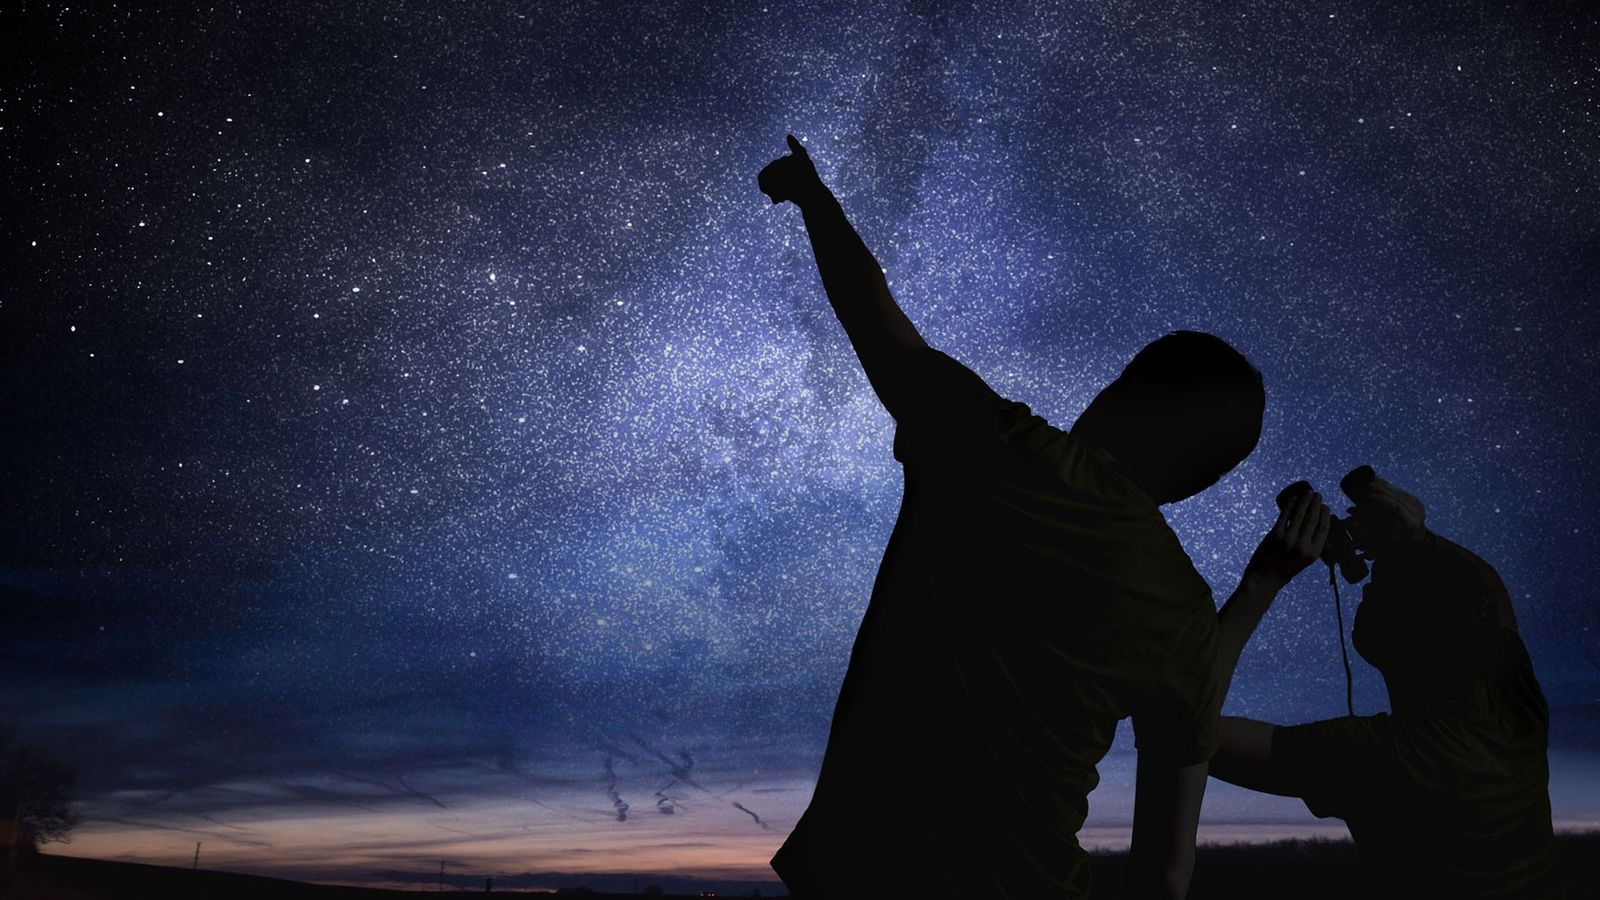 Star Gazer Night - Things to do in Sharm El Sheikh With Outdoor Activities - Egypt Tours Portal